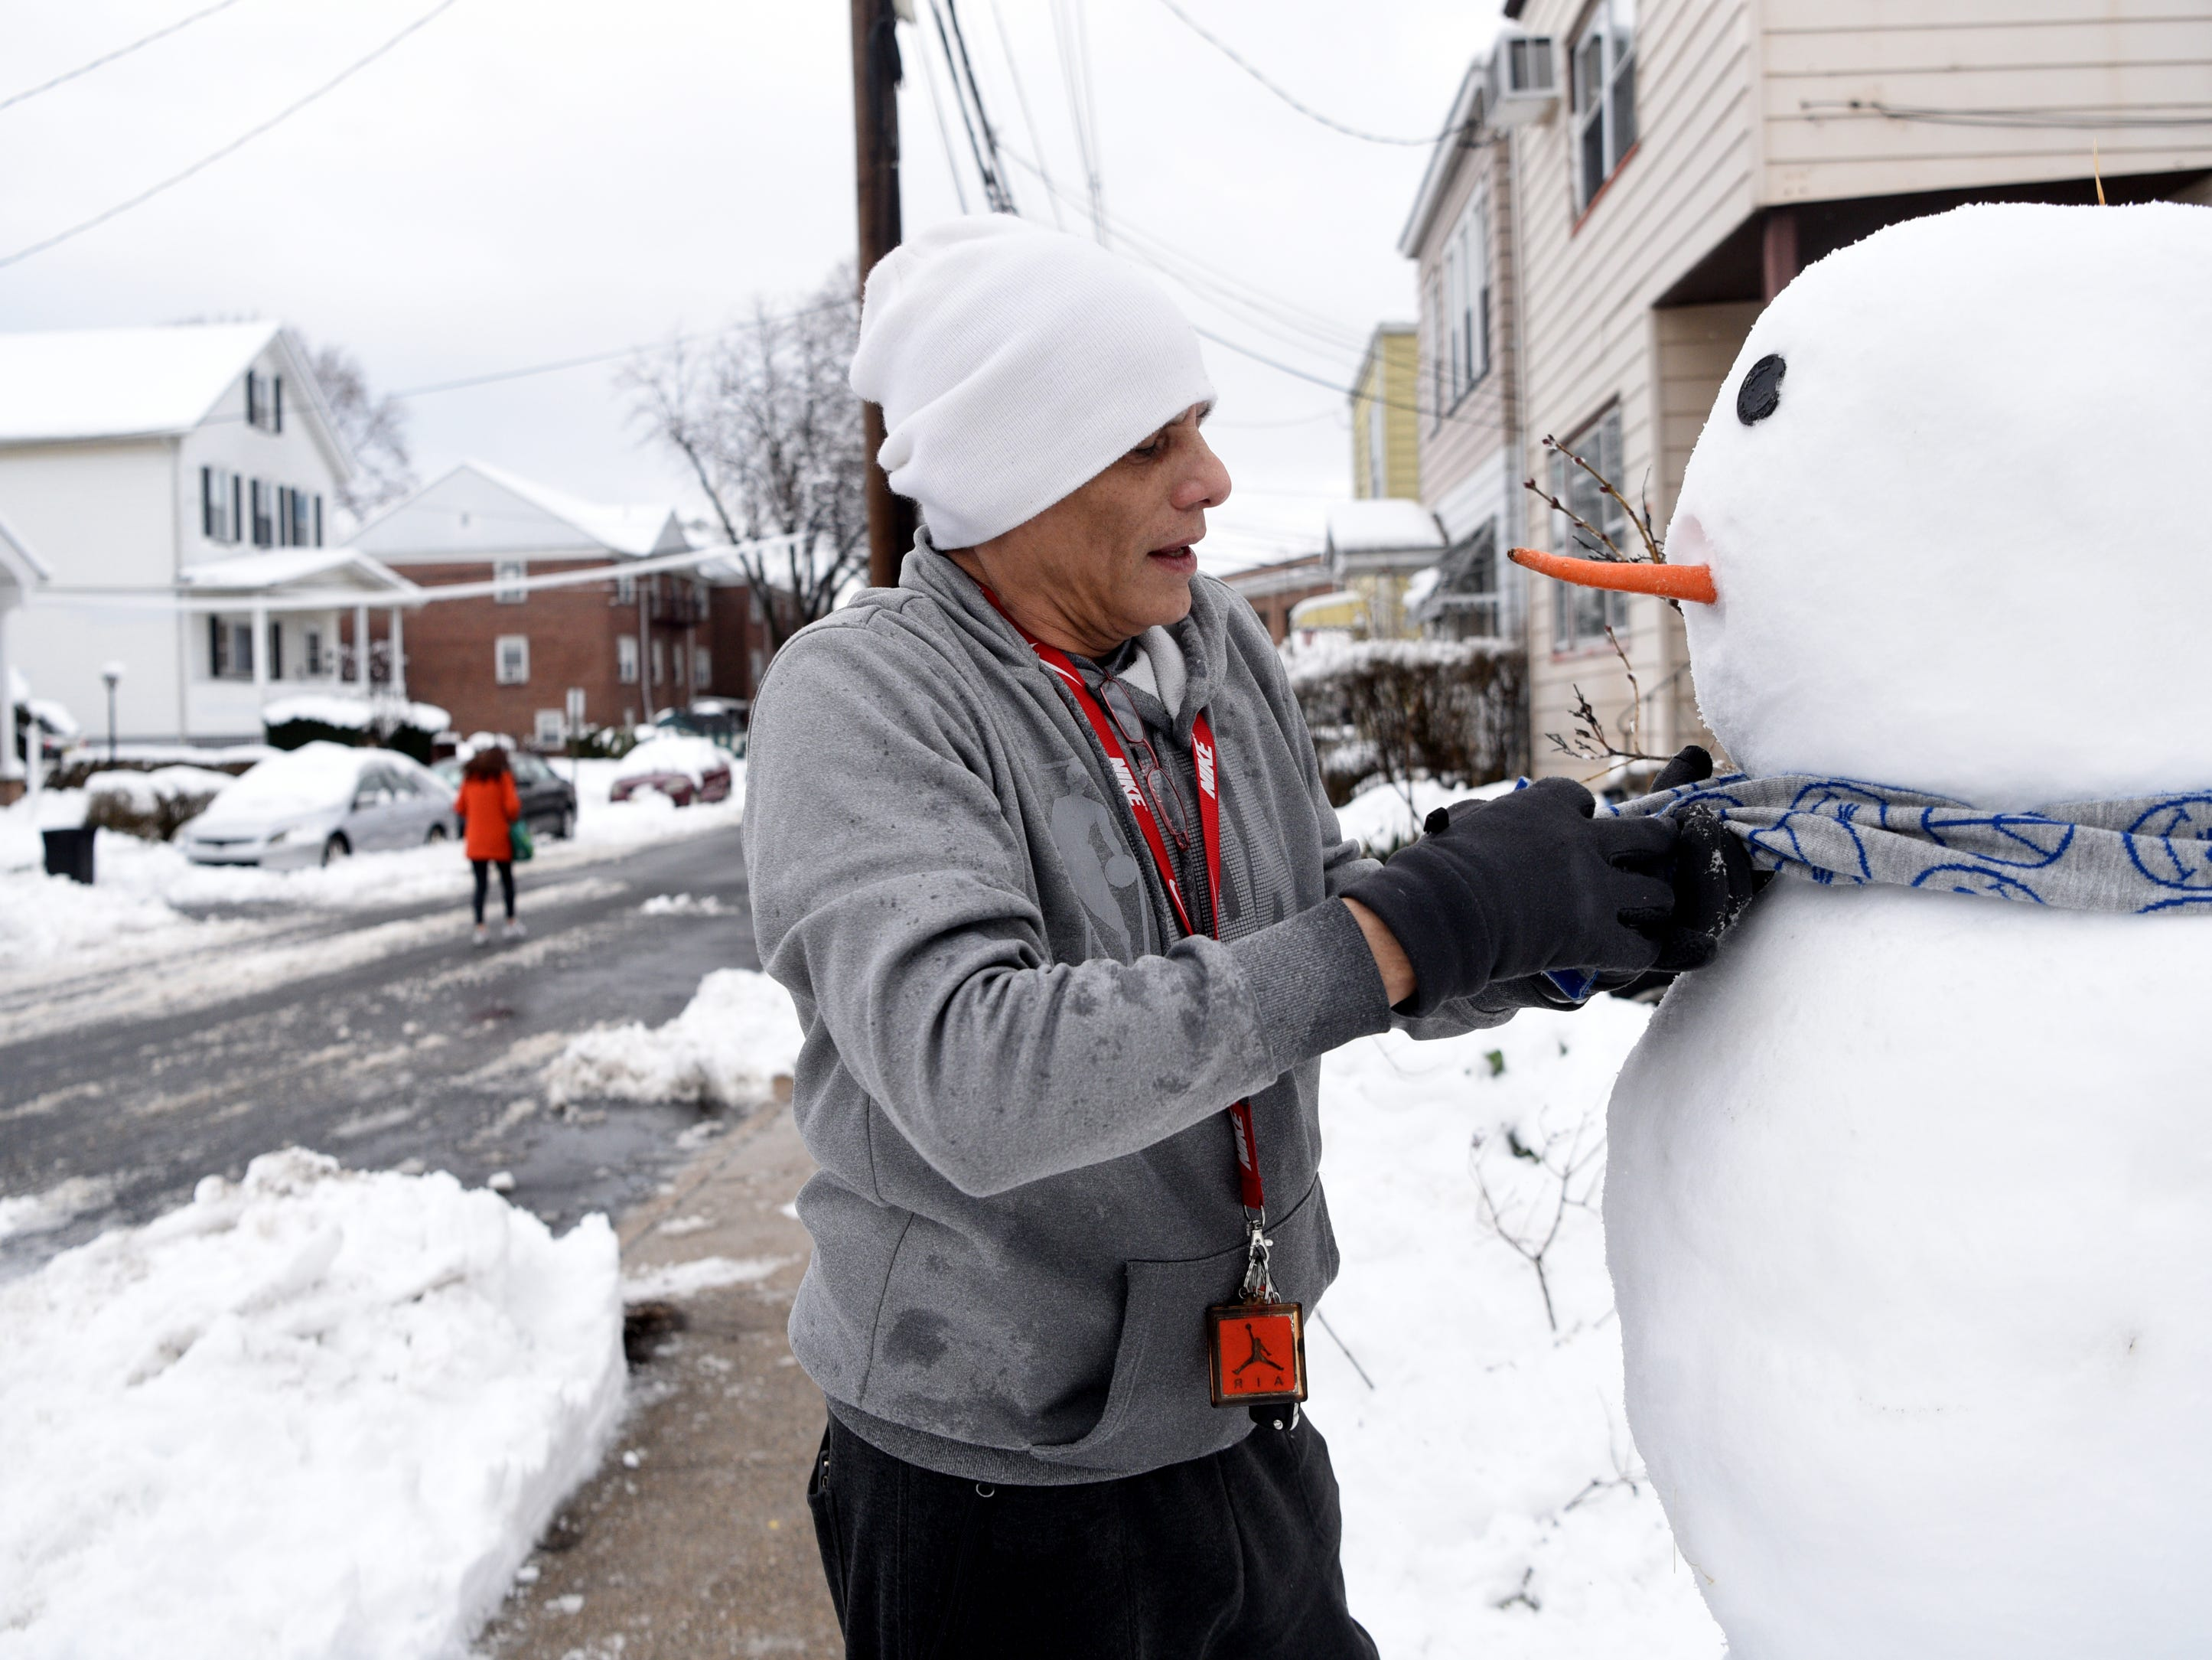 """Michael Rivera gives his """"Frosty,"""" the snowman a scarf in Clifton on Monday, March 4, 2019. Rivera promised to build a snowman for his daughters."""